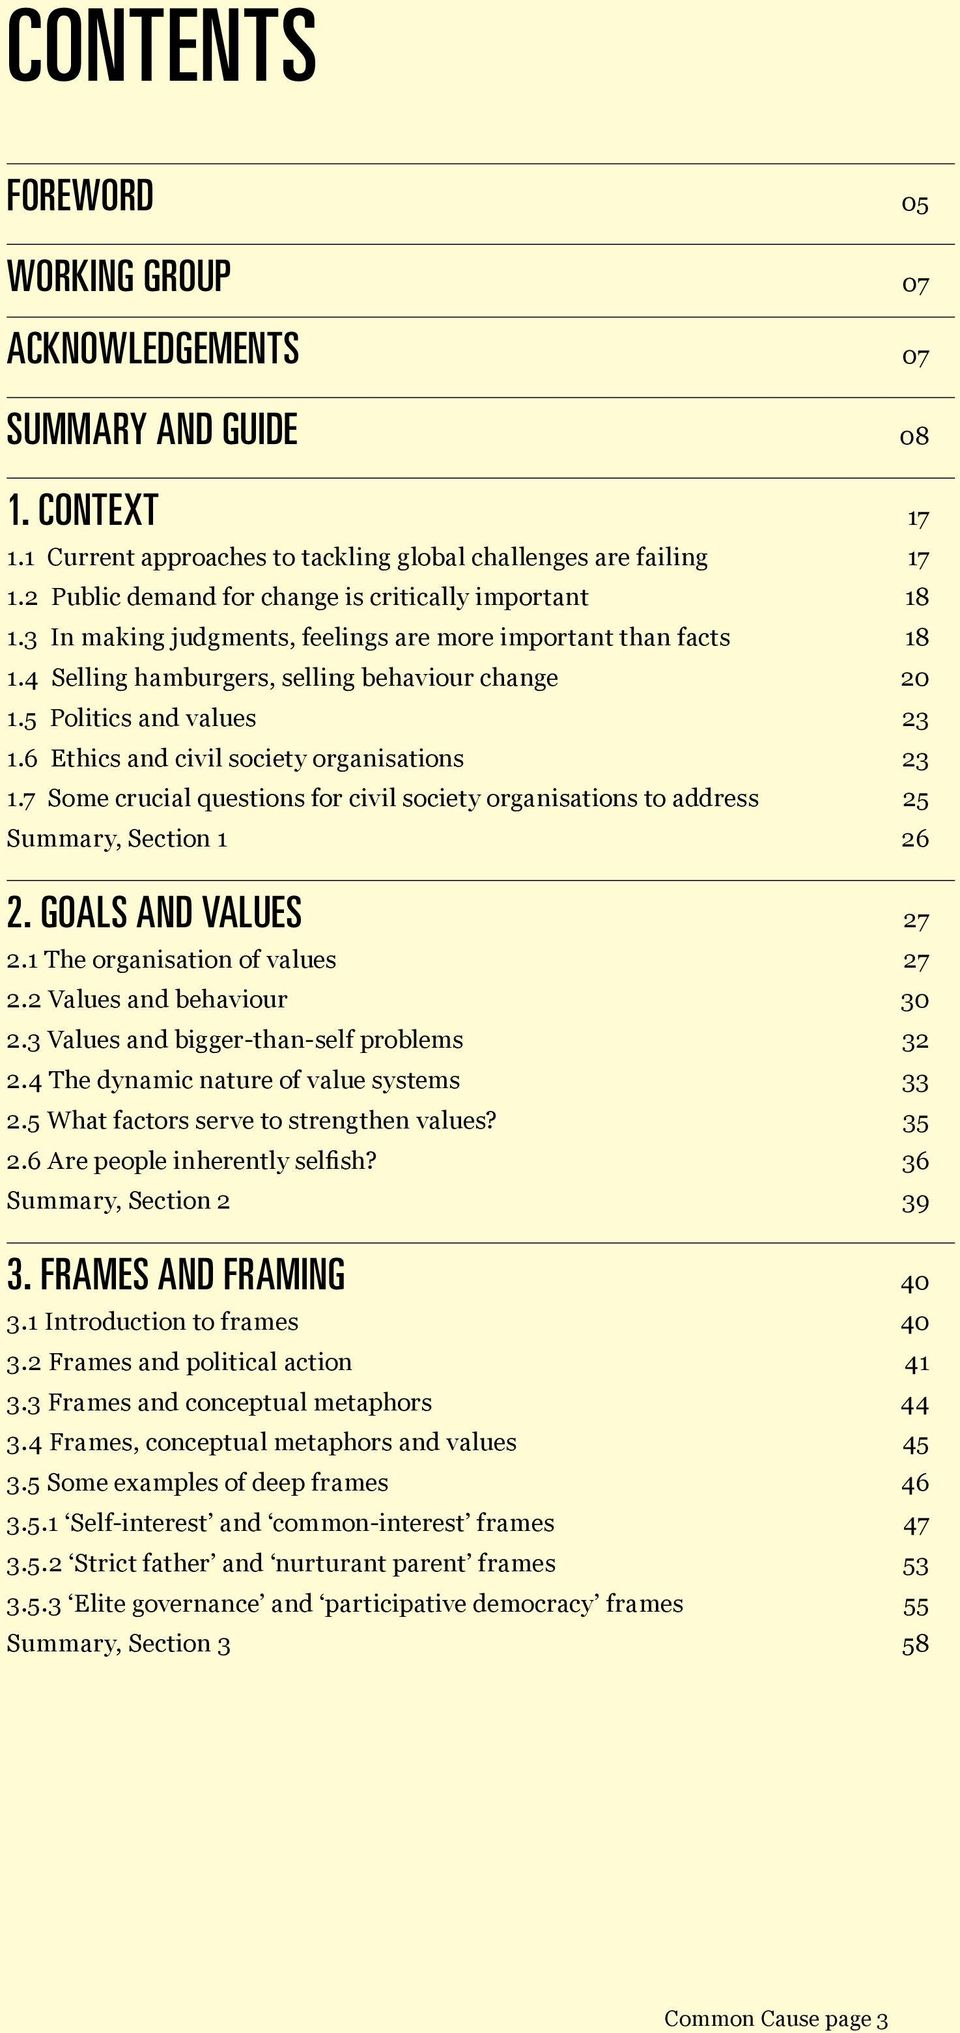 5 Politics and values 23 1.6 Ethics and civil society organisations 23 1.7 Some crucial questions for civil society organisations to address 25 Summary, Section 1 26 2. Goals and values 27 2.